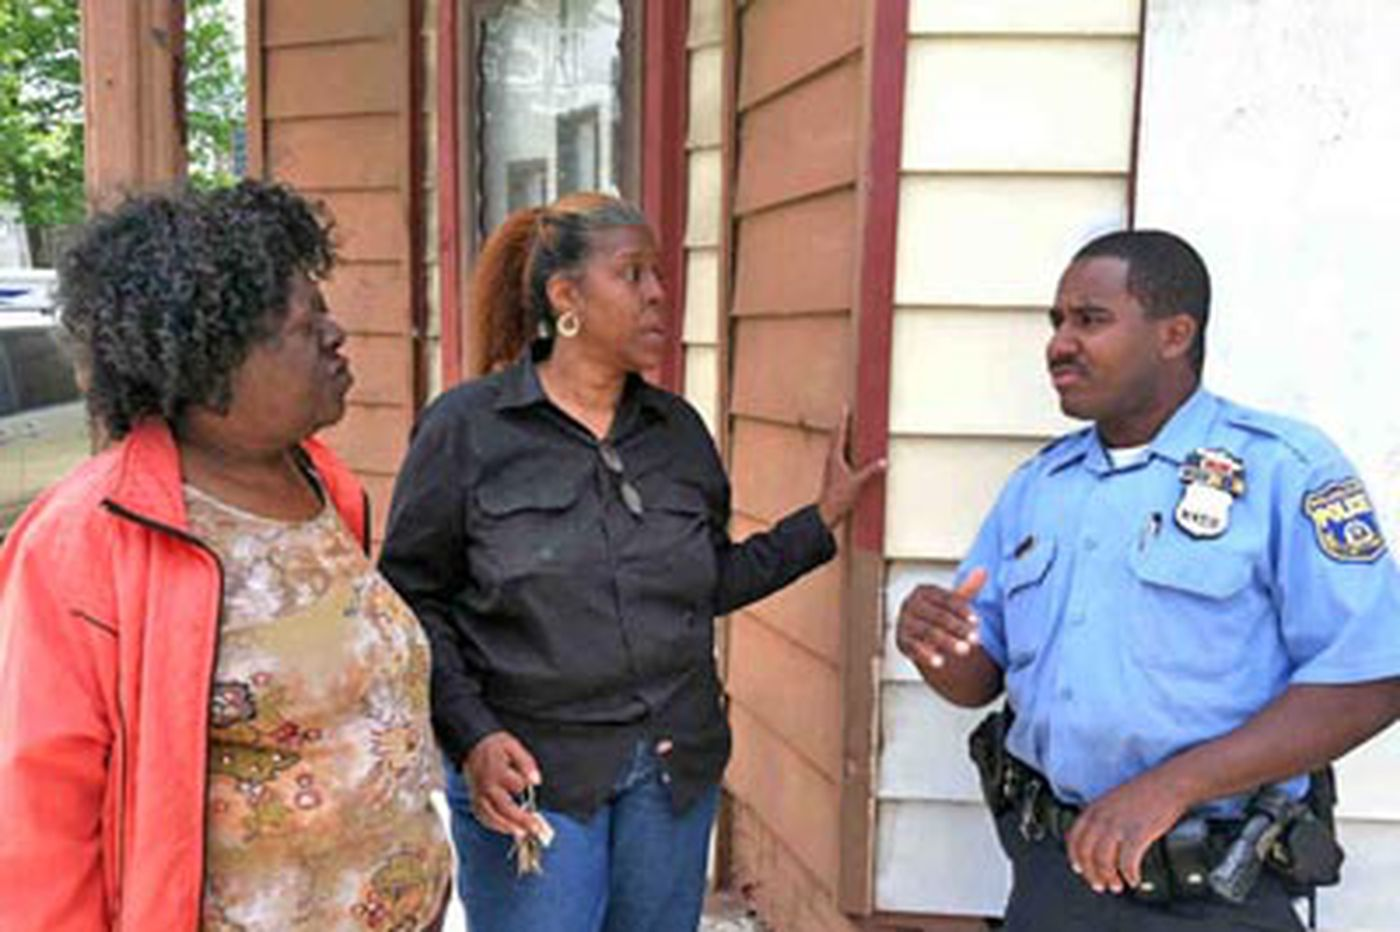 Annette John-Hall: With Philly Rising, reclaiming neighborhoods, one at a time